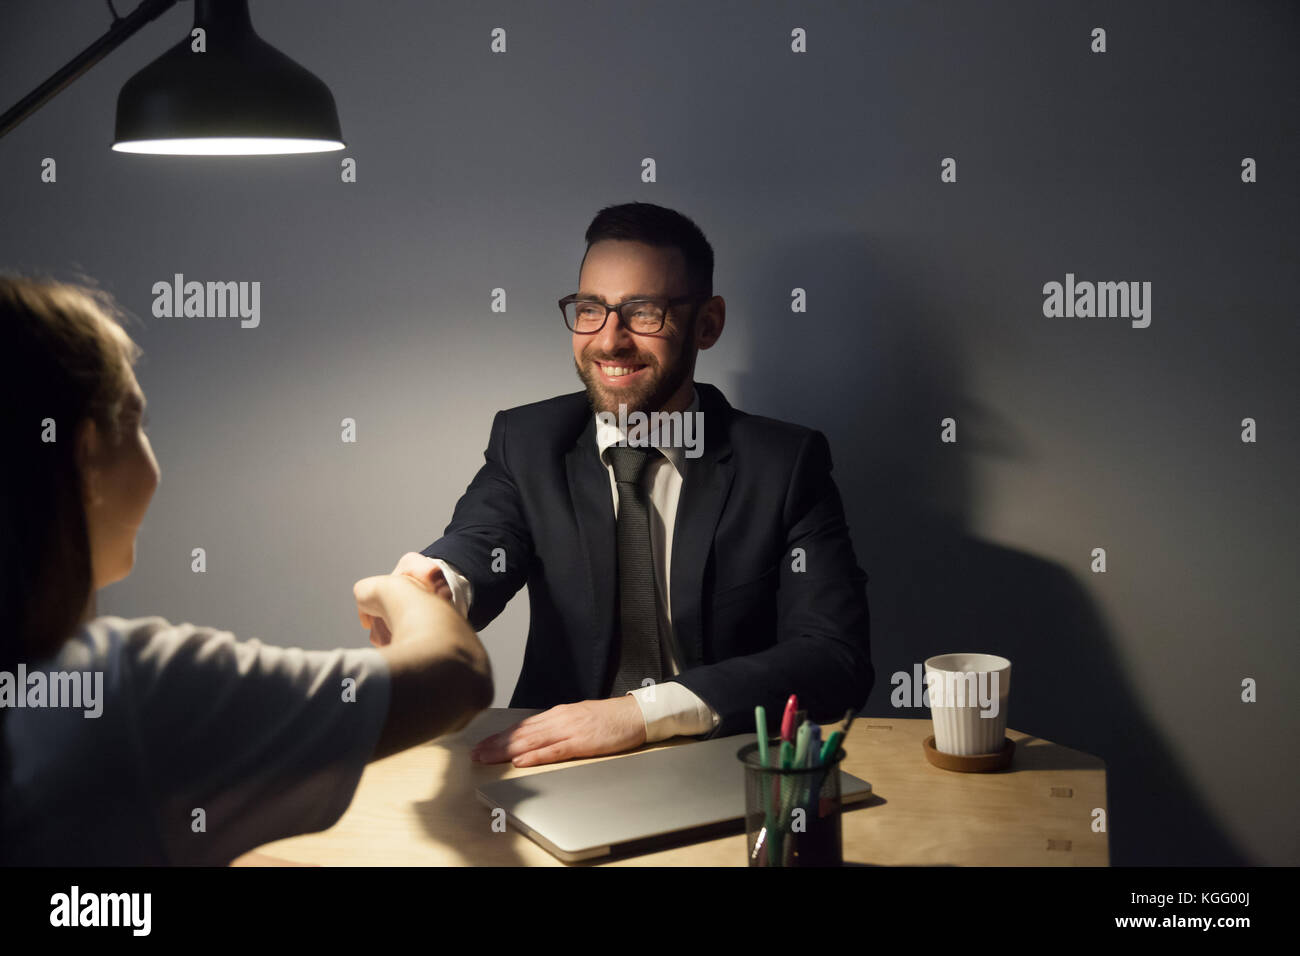 Two businesspeople seal a deal with handshake after long negotiations in dark office with lamp light. Smiling bearded - Stock Image